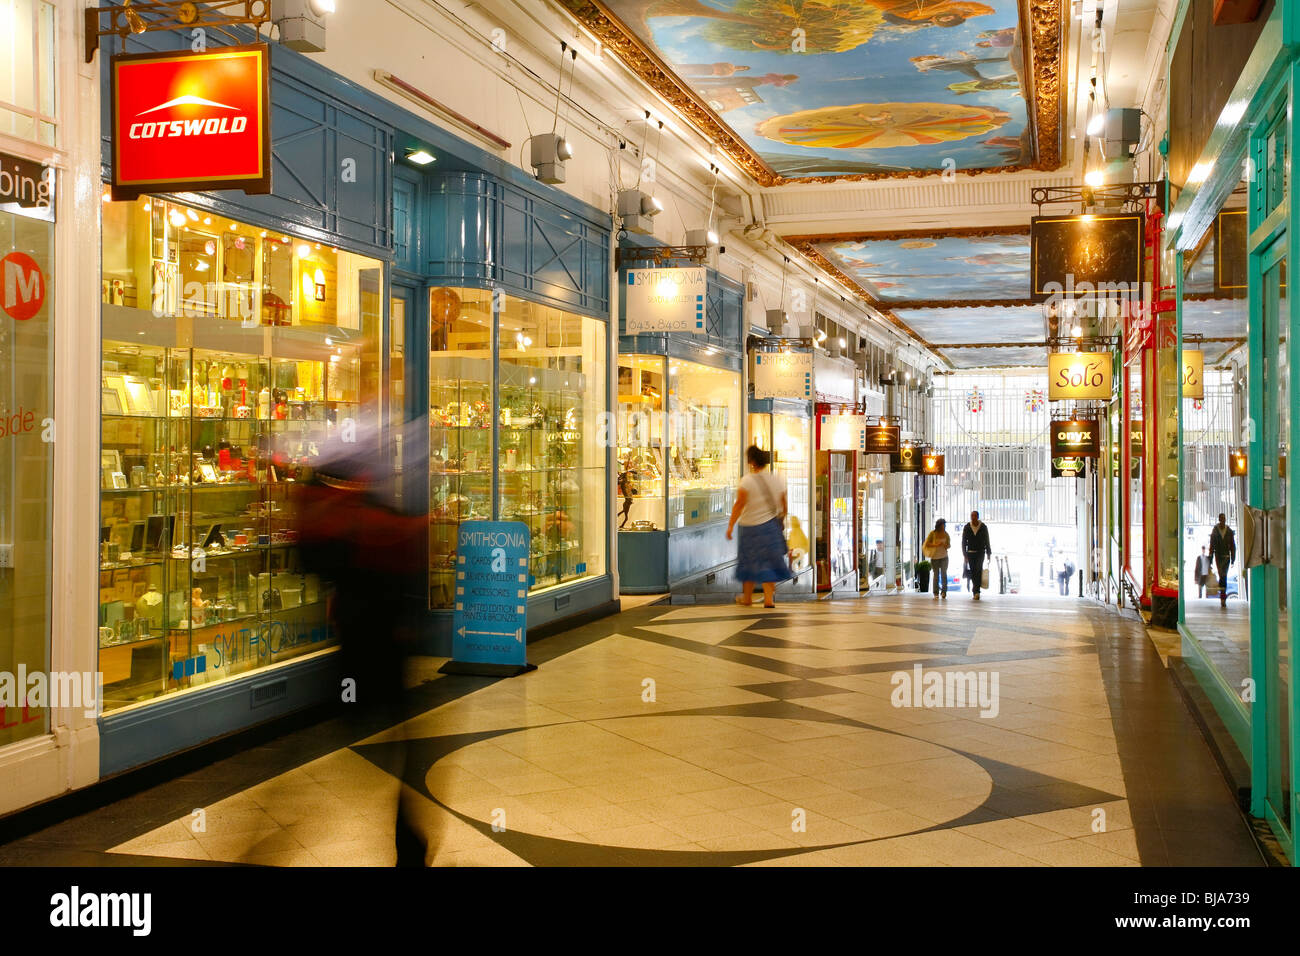 picadilly arcade, birmingham. Shopping and retail outlets - Stock Image